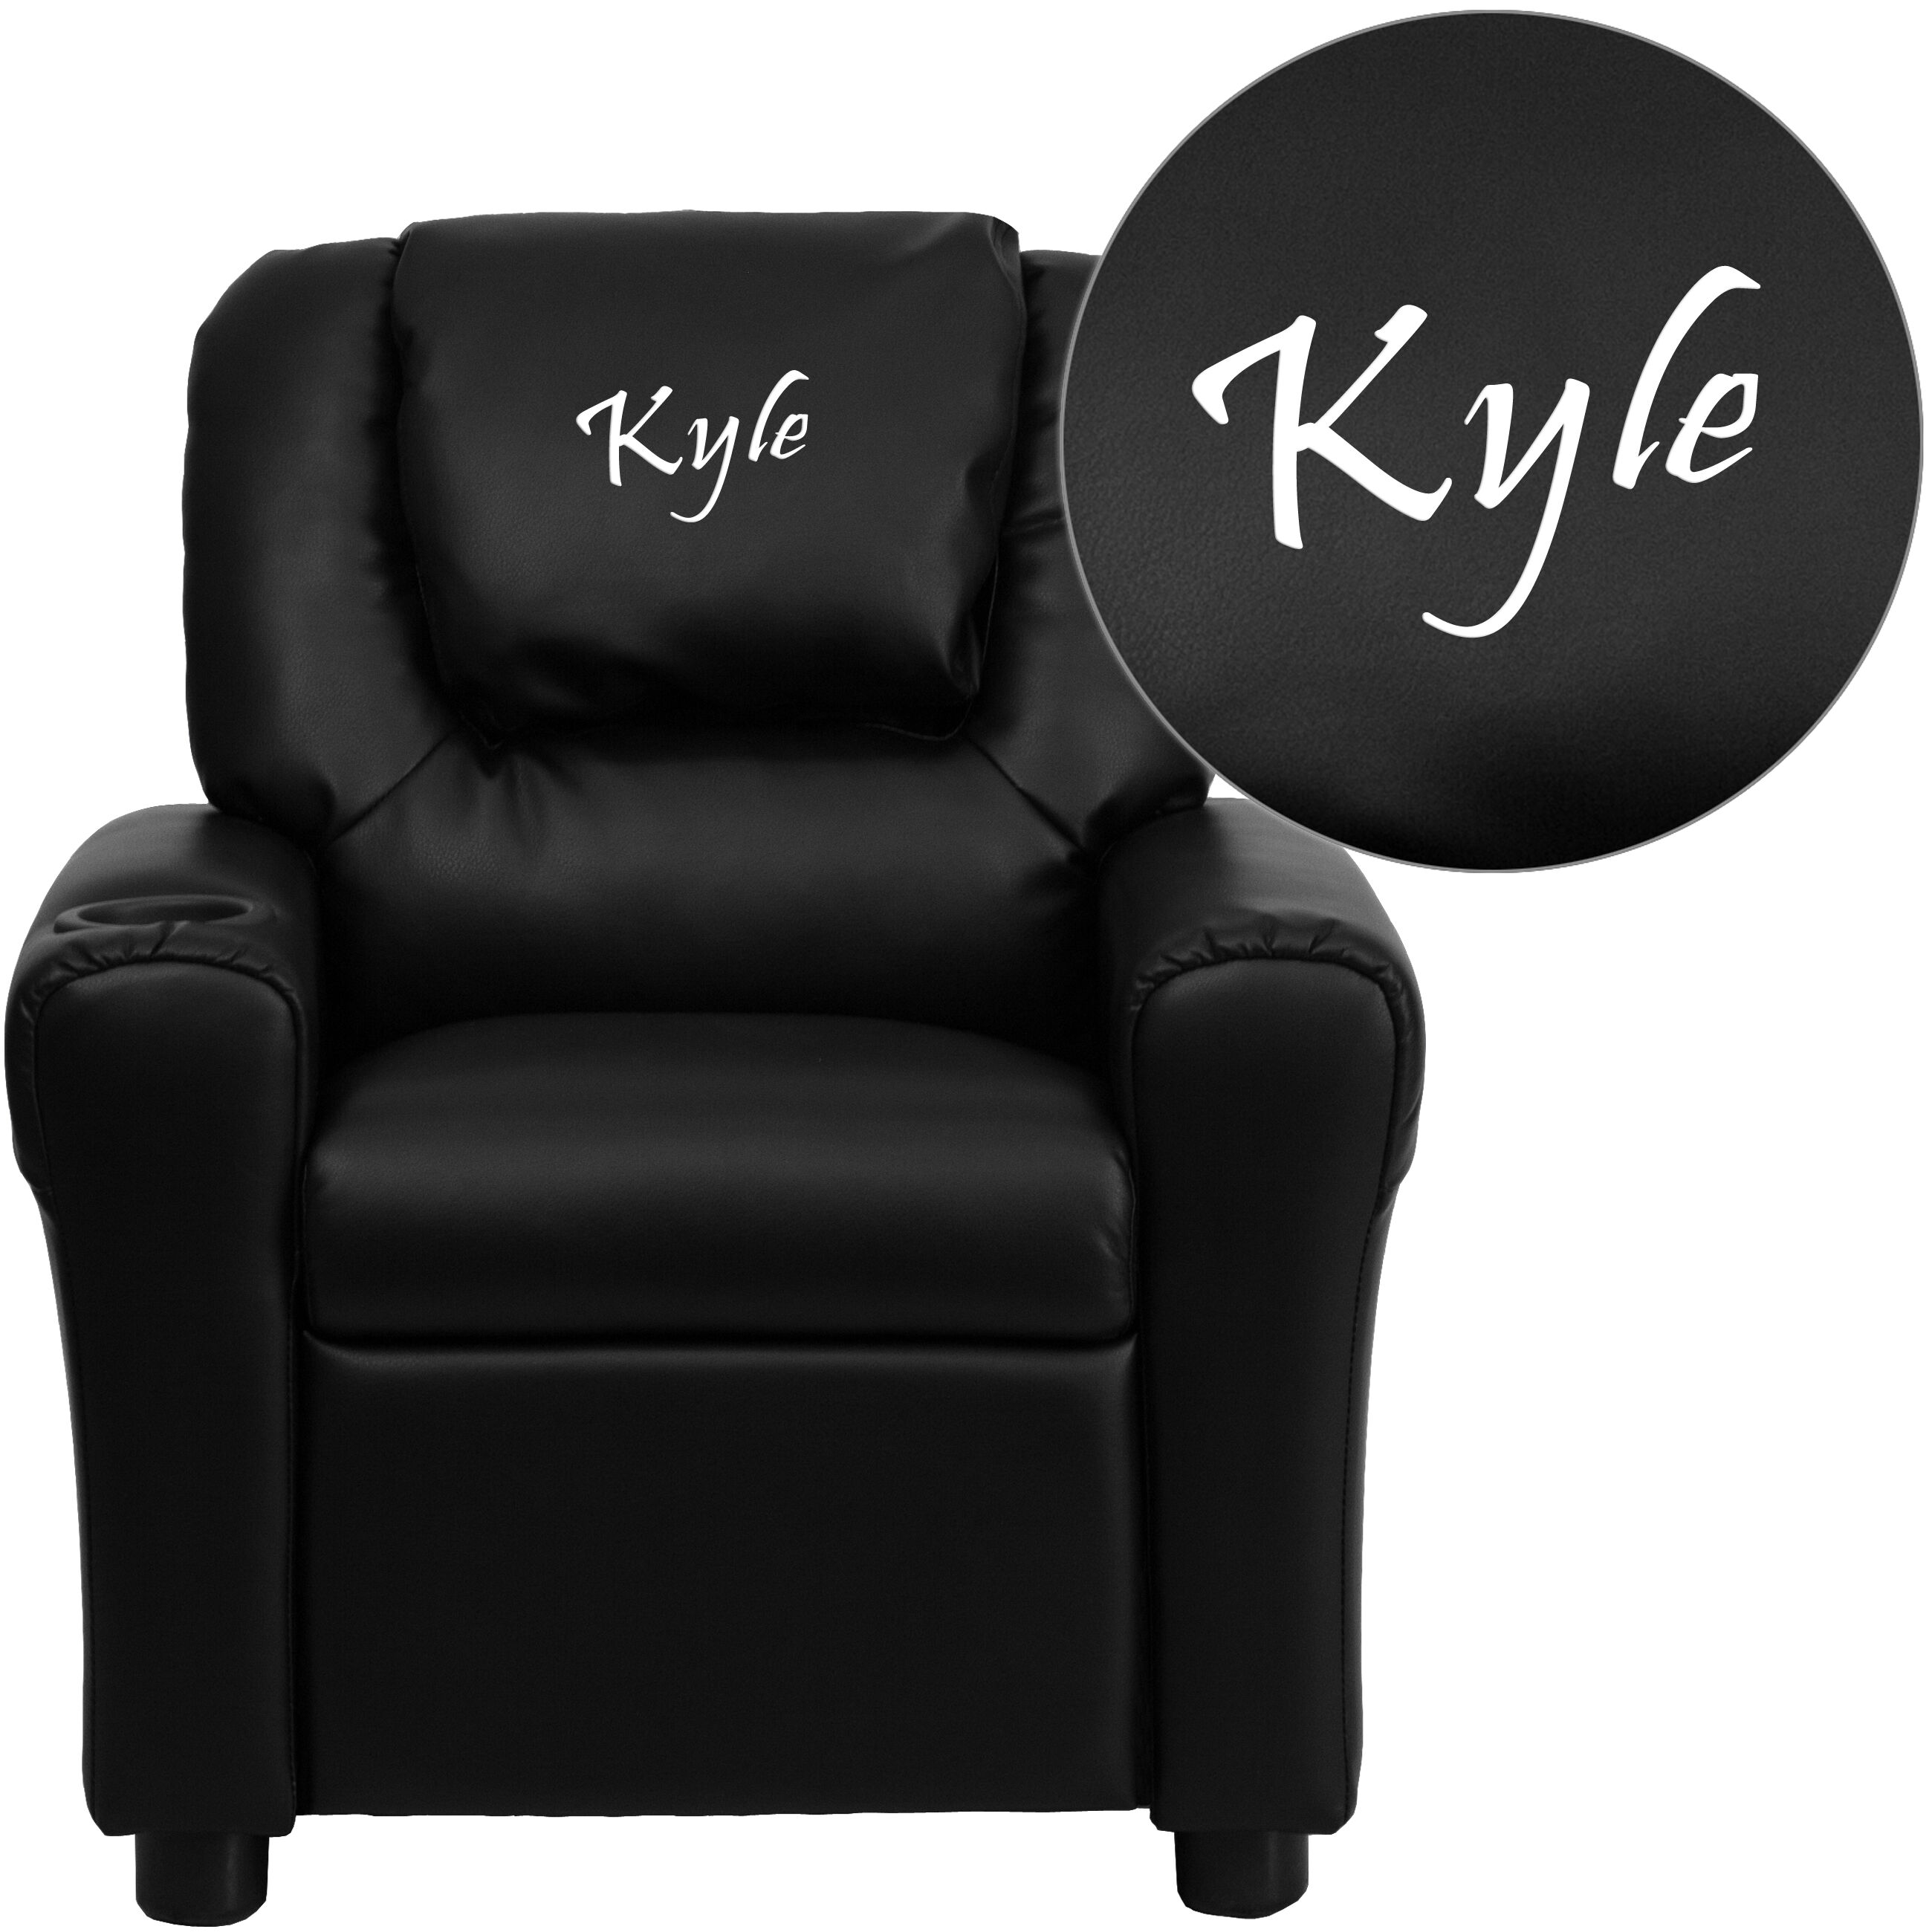 ... Our Personalized Black Leather Kids Recliner With Cup Holder And  Headrest Is On Sale Now.